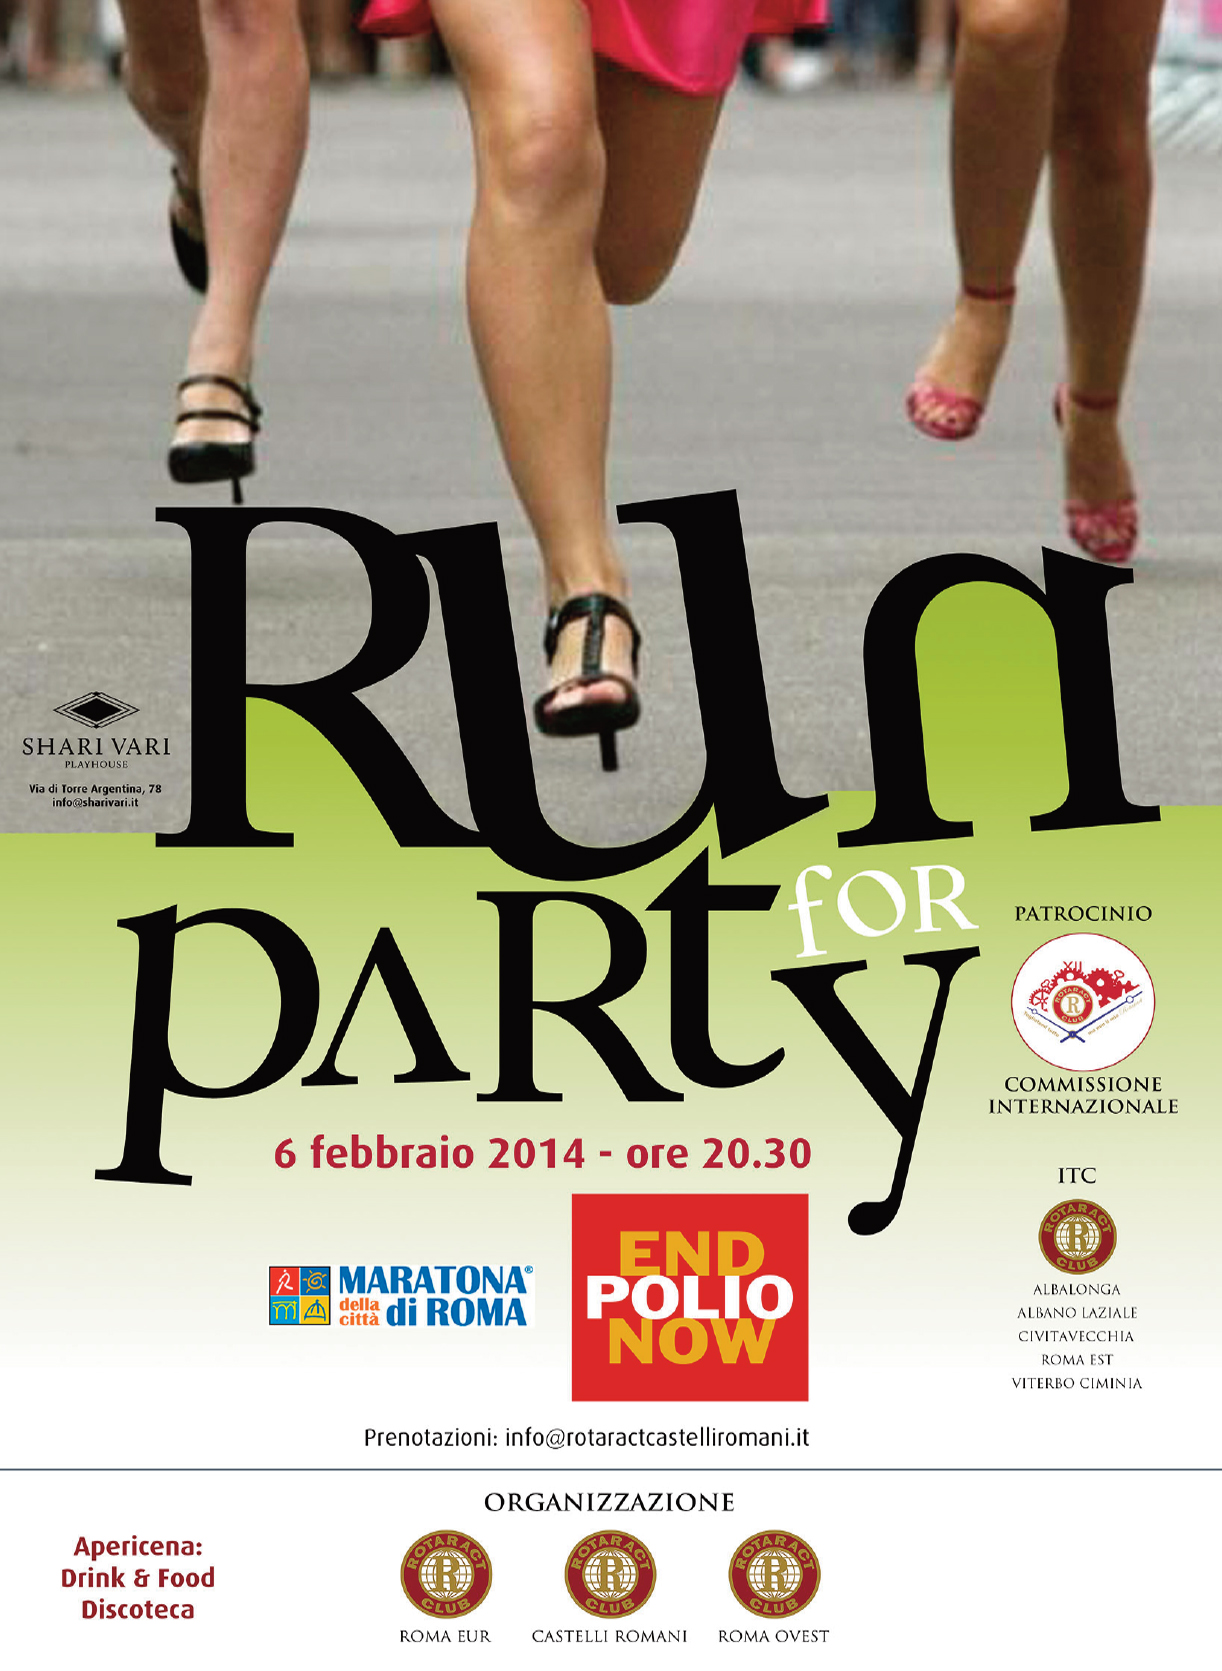 Rotary, rotaract, run party, manifesto, poster